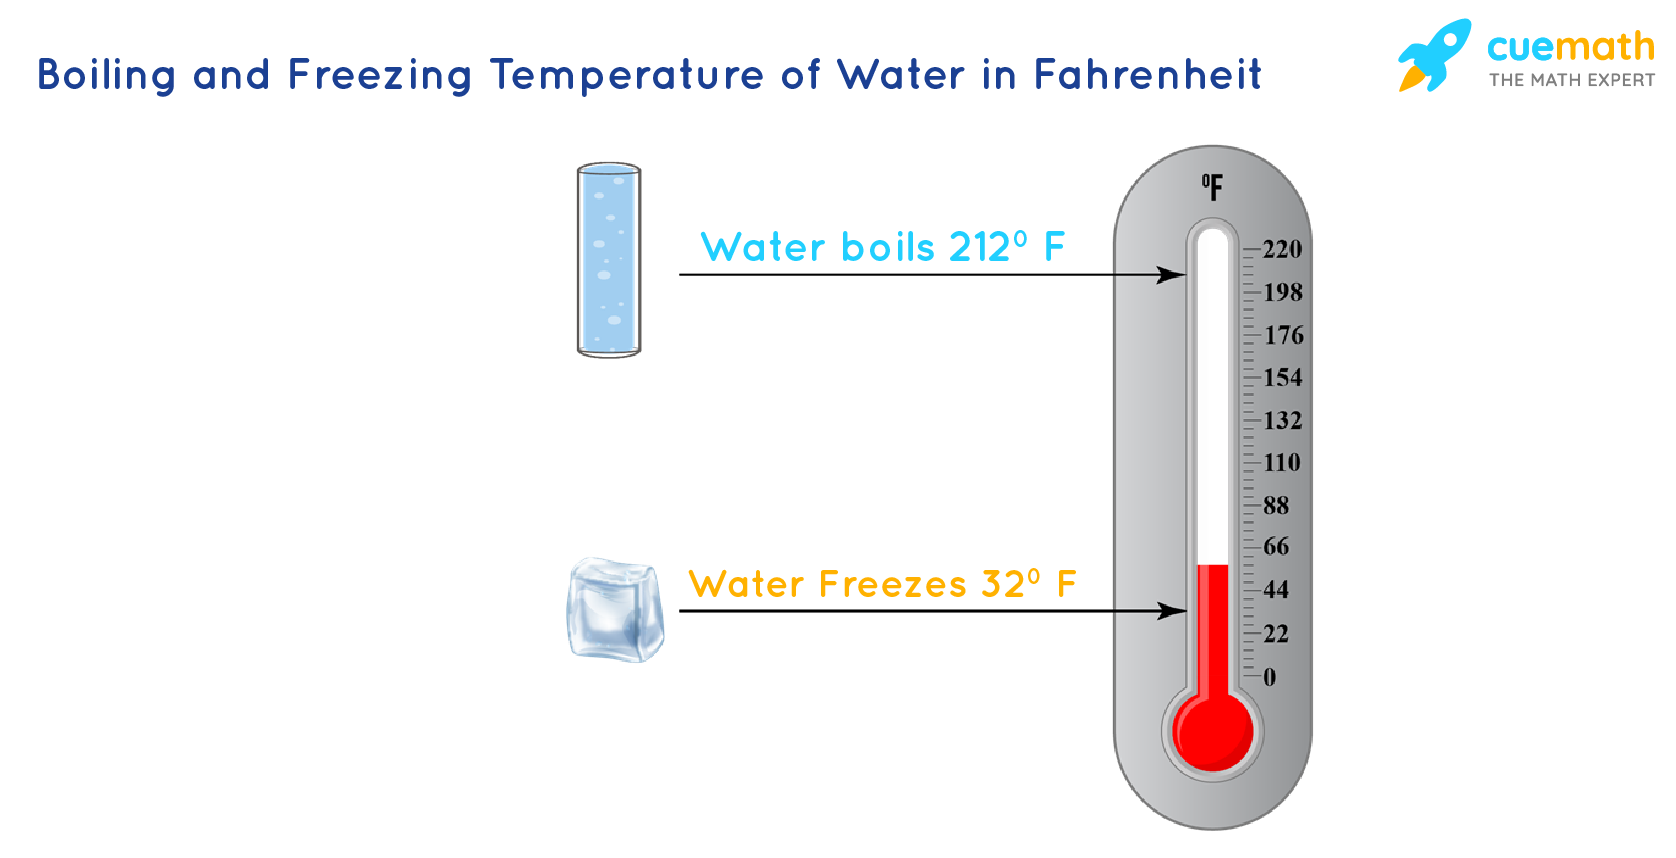 Fahrenheit scale showing the temperature at which water boils and freezes.